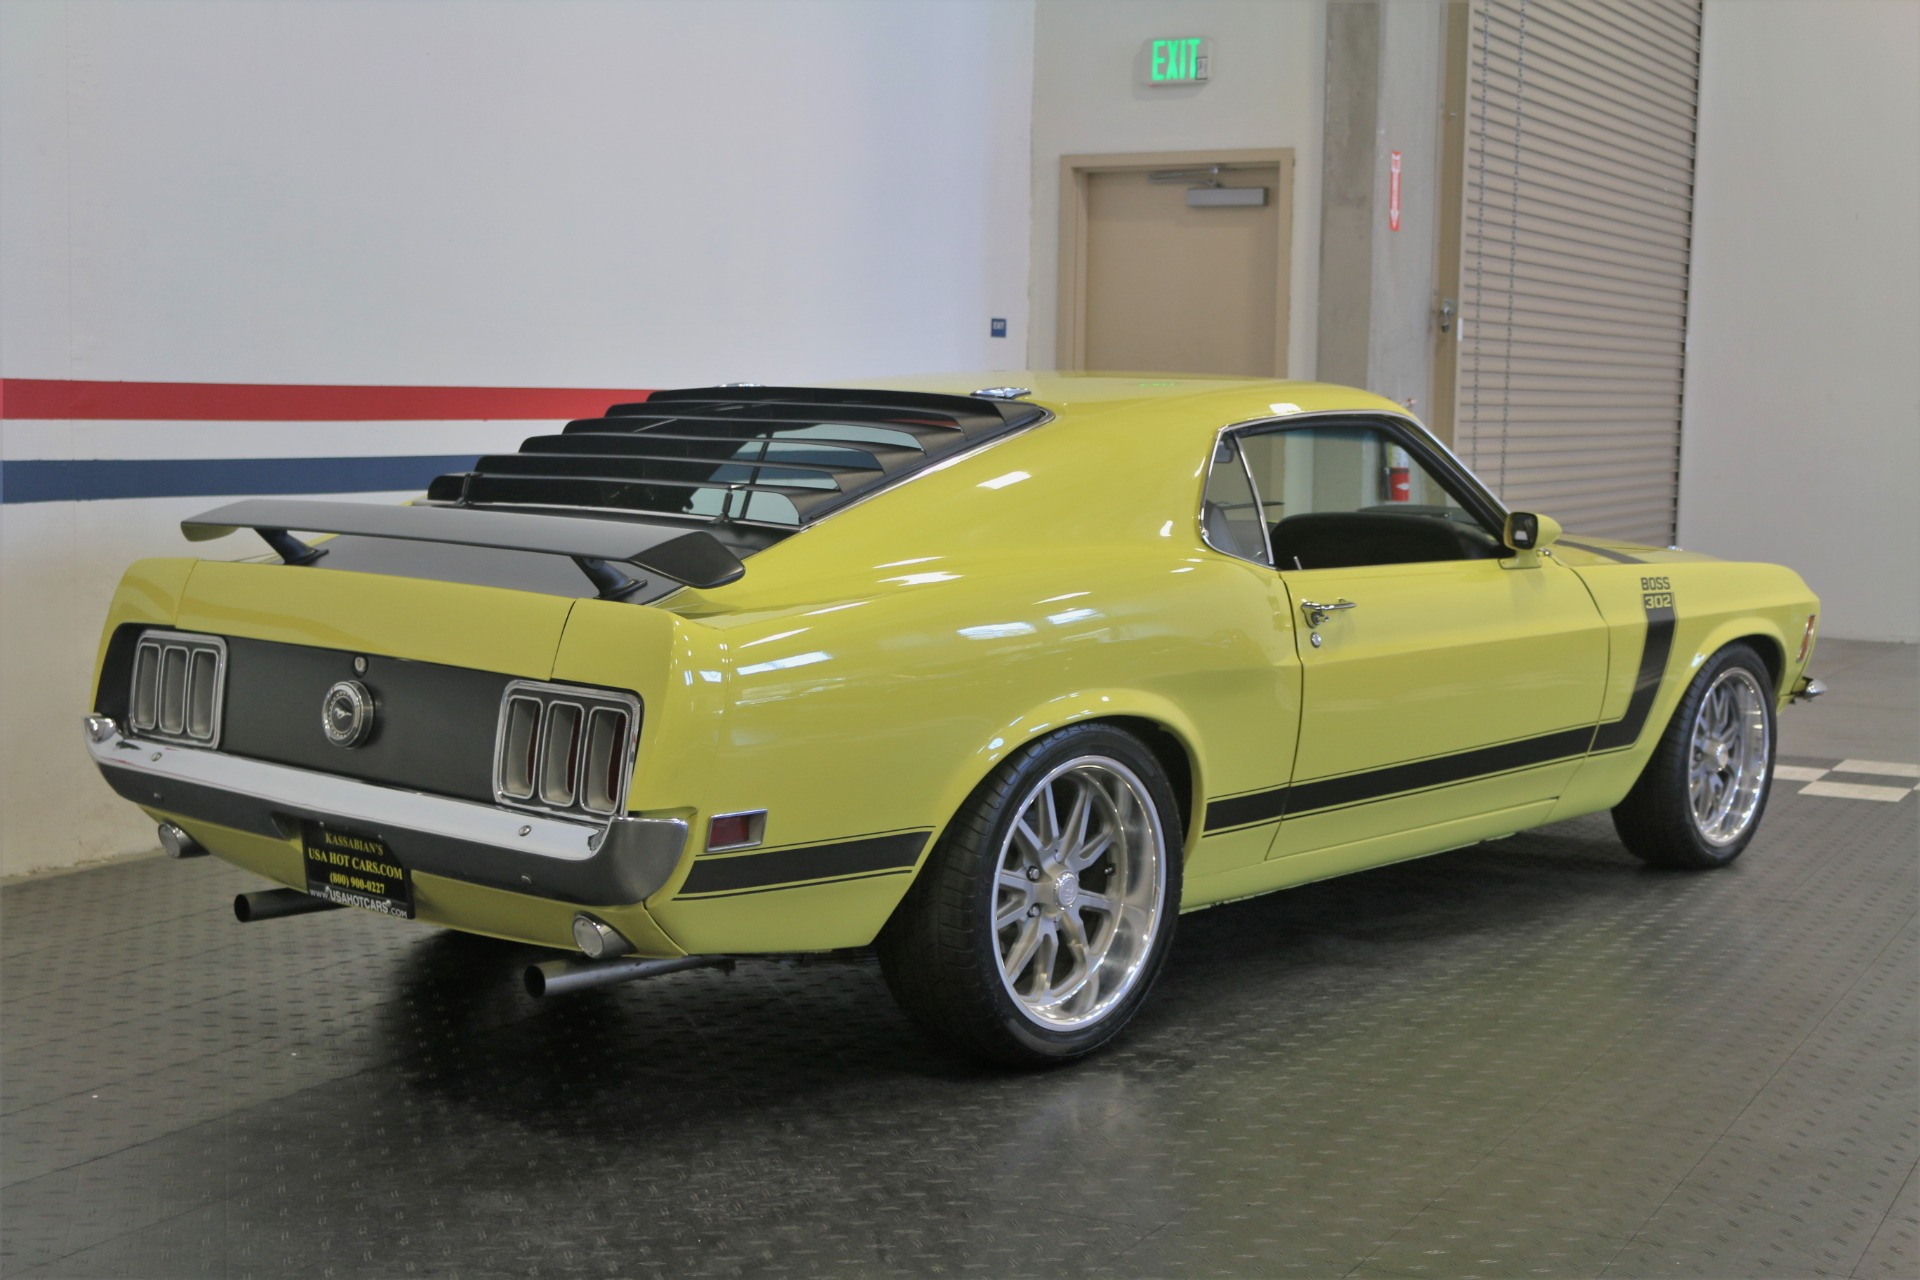 Used-1970-Ford-Mustang-Boss-302-Tribute